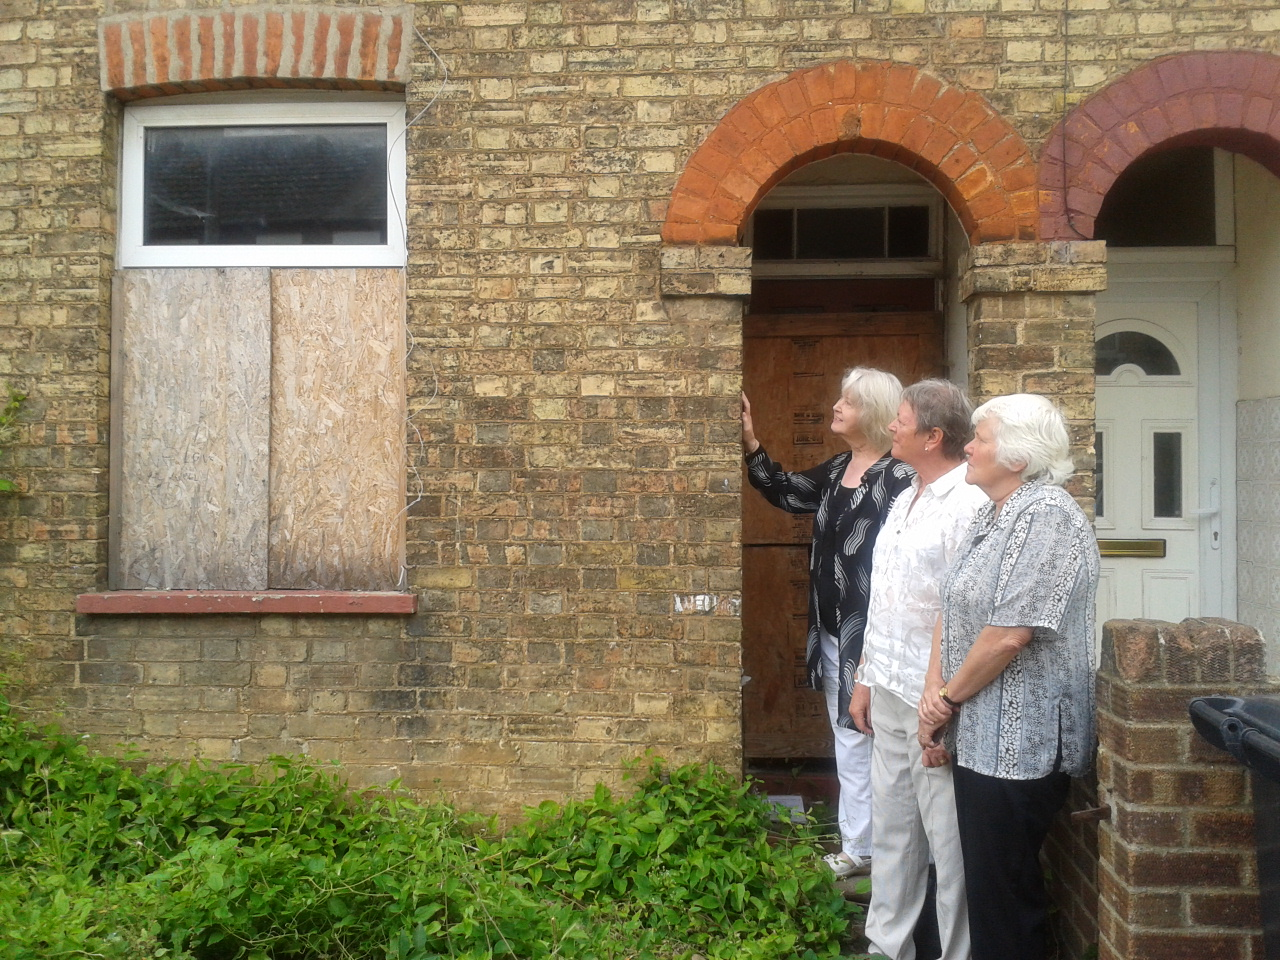 Cllrs_Colleen_Atkins__Shan_Hunt___Sue_Oliver_at_26_Edward_Road_Empty_property.jpg